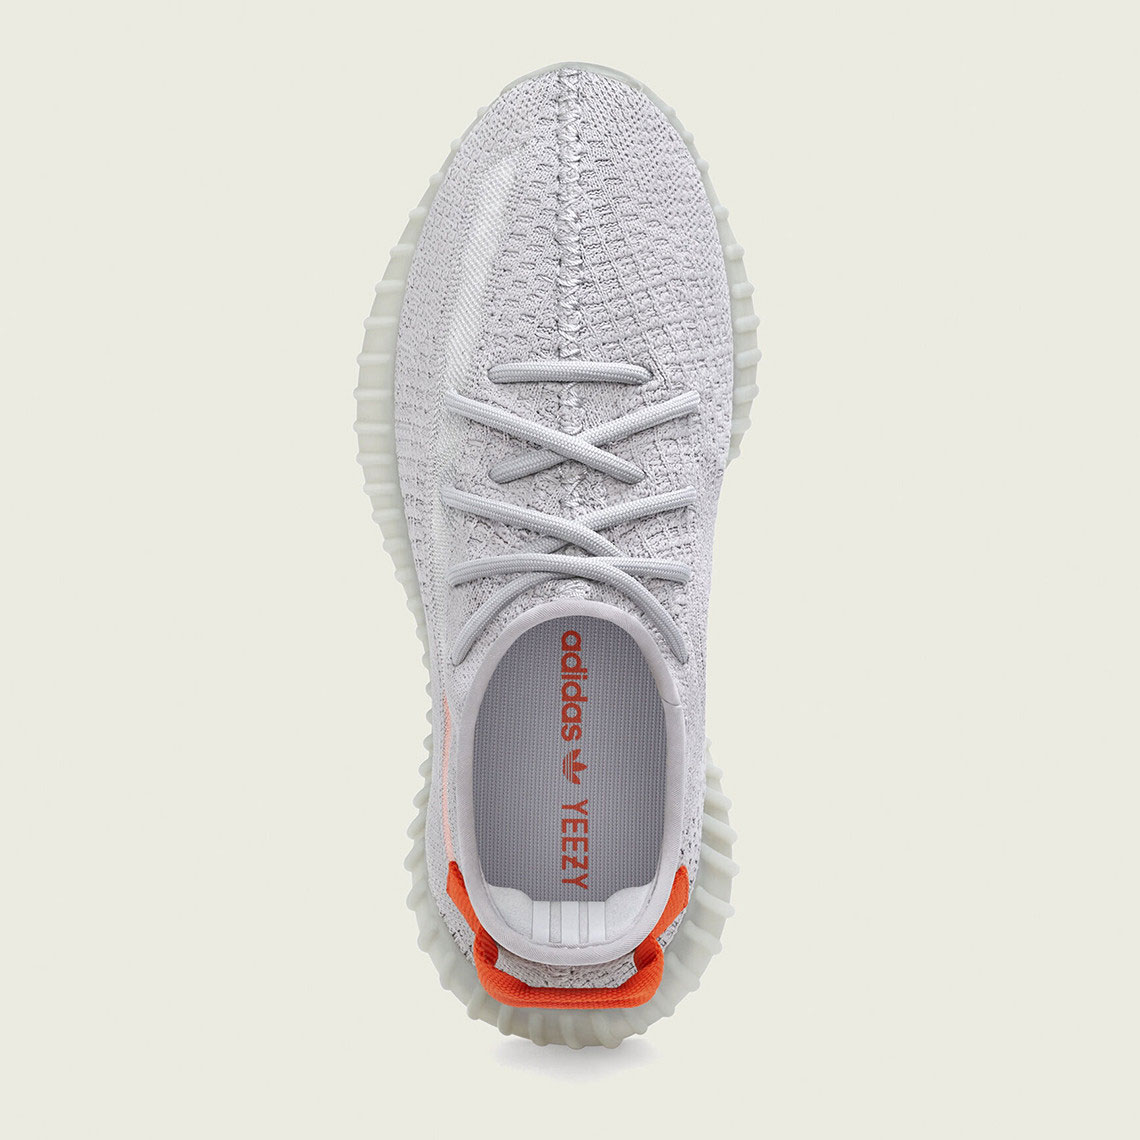 yeezy-boost-350-v2-tail-light-release-date-2